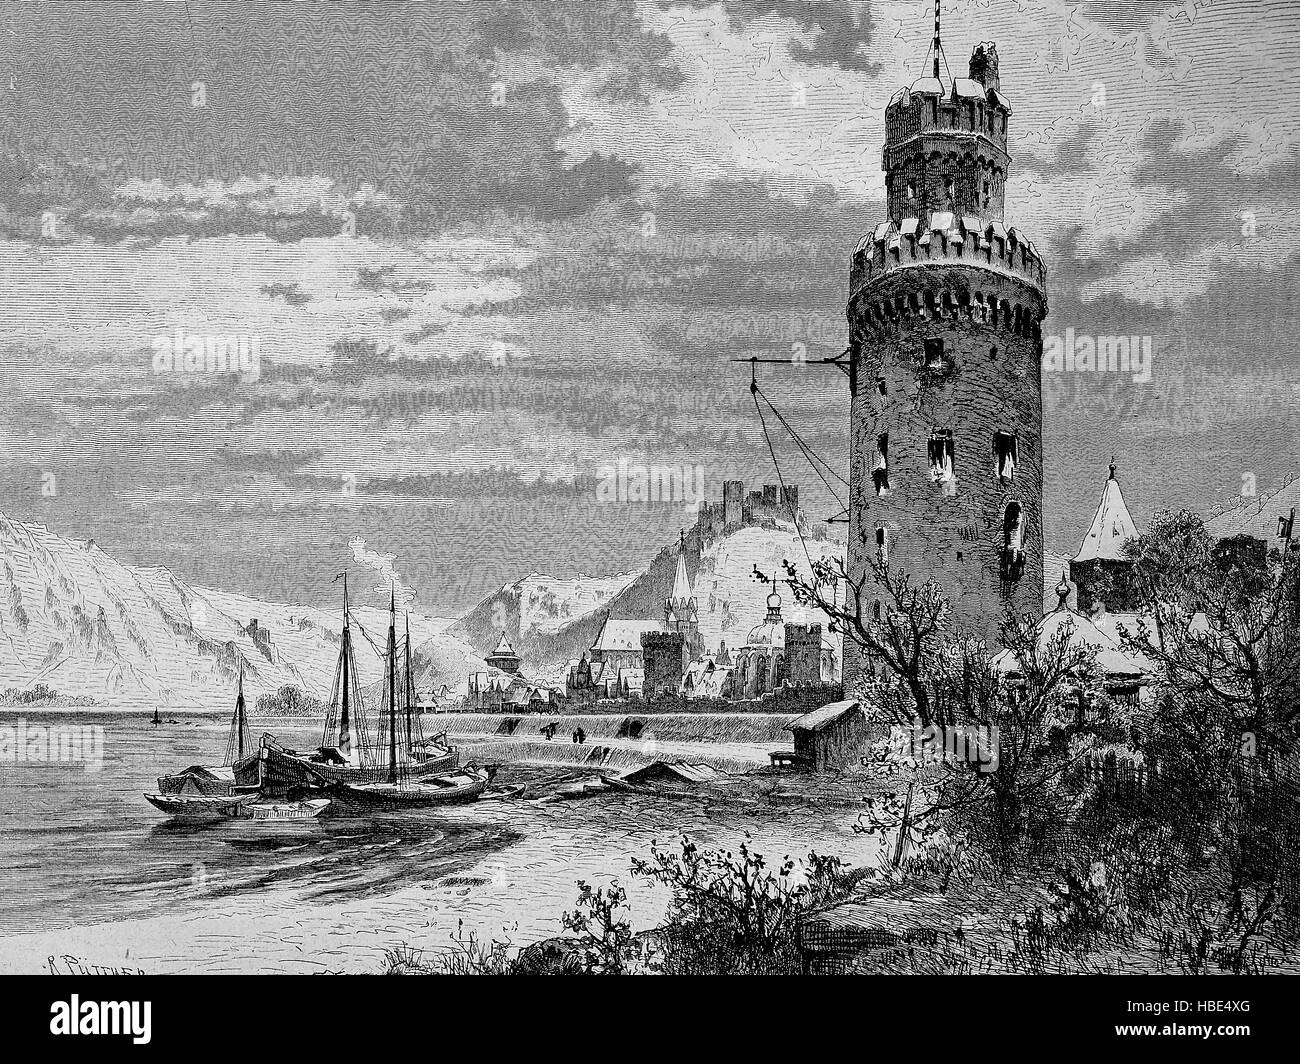 view of Oberwesel on the Middle Rhine in the Rhein-Hunsrueck-district in Rhineland-Palatinate, Germany, illustration, - Stock Image